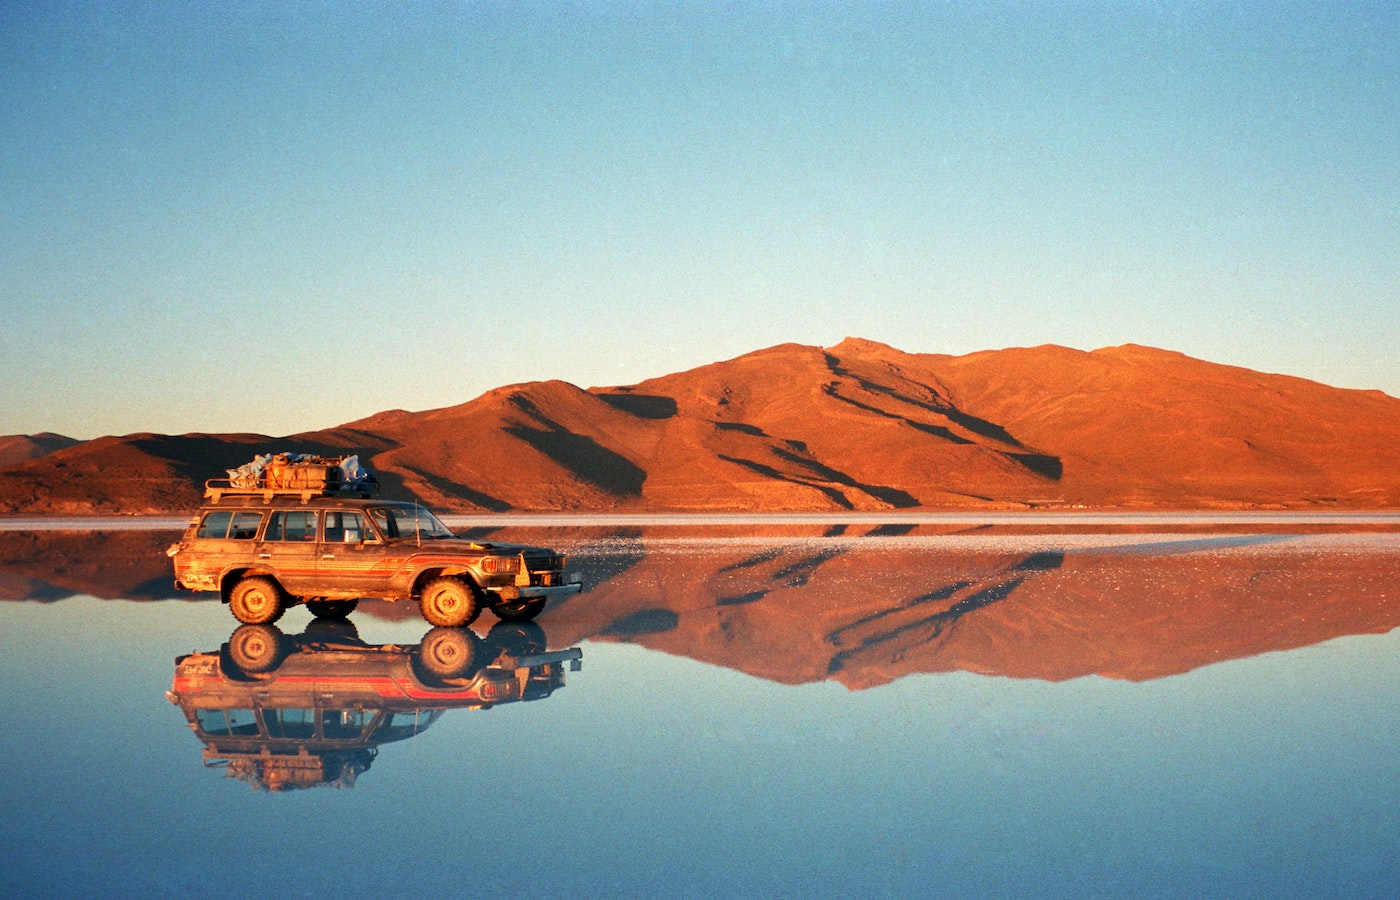 Tours by sunset on the Uyuni Salt Flats